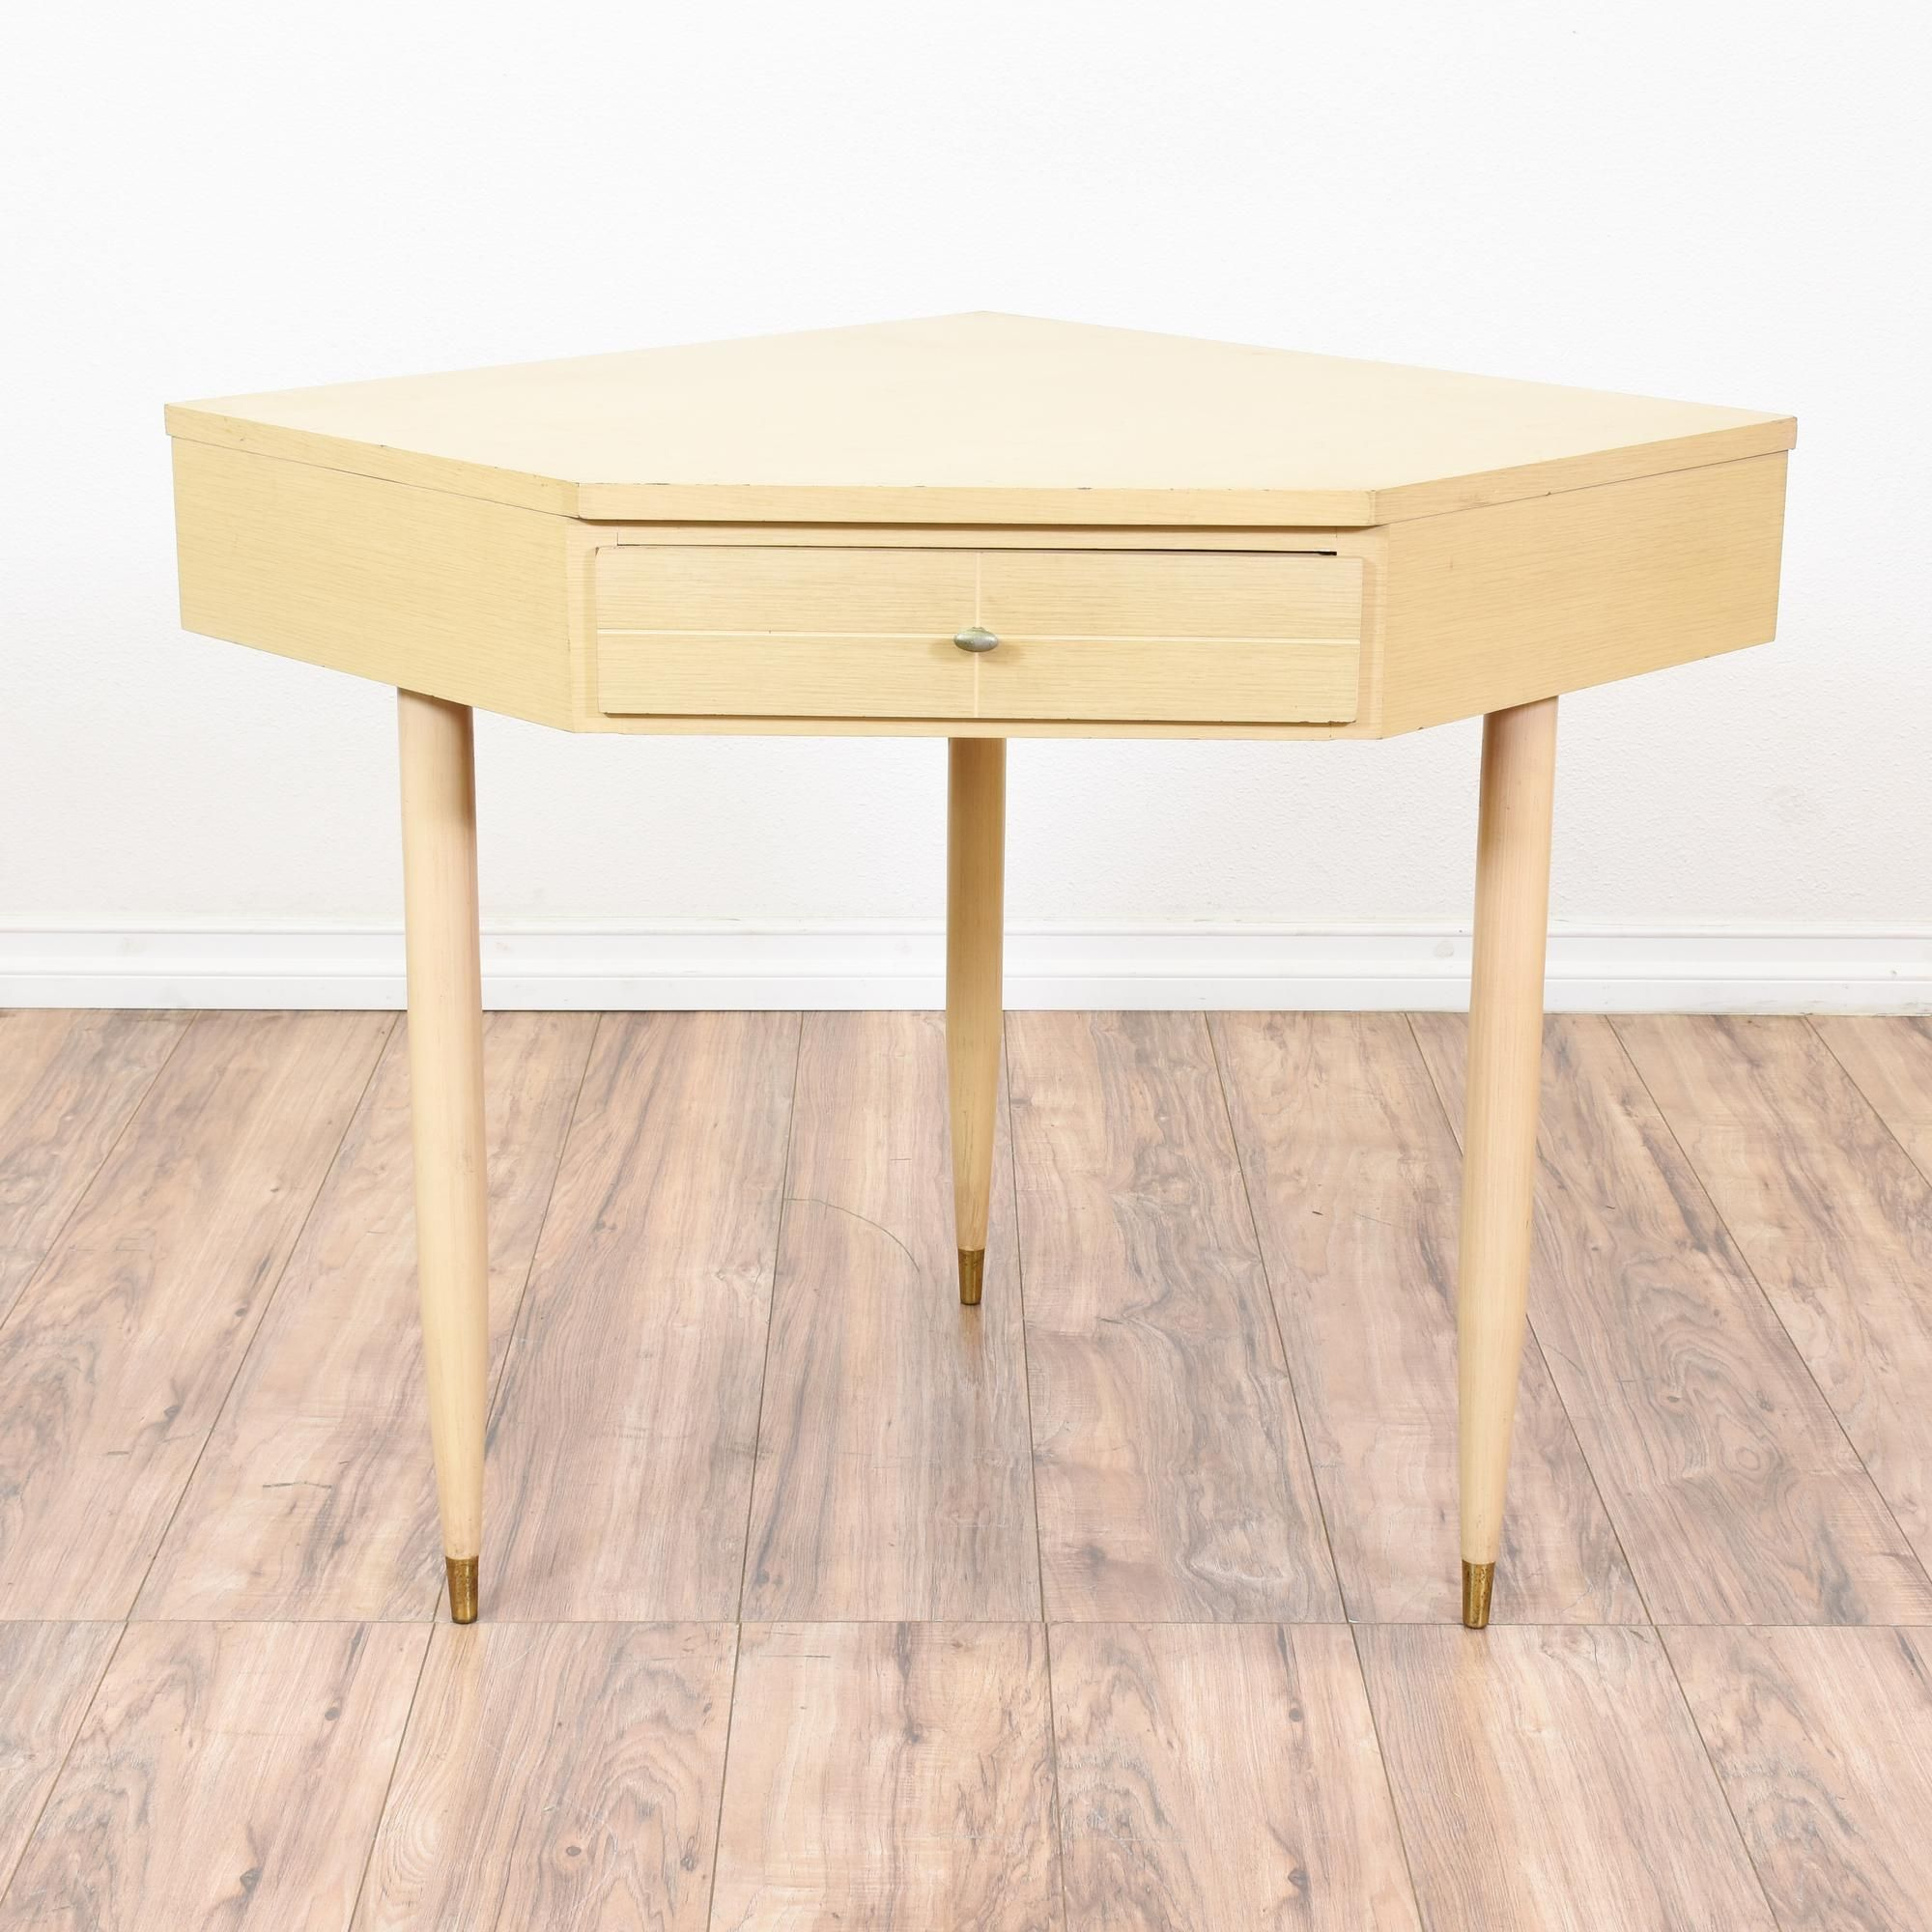 This mid century modern corner desk is featured in a solid wood with a light blonde